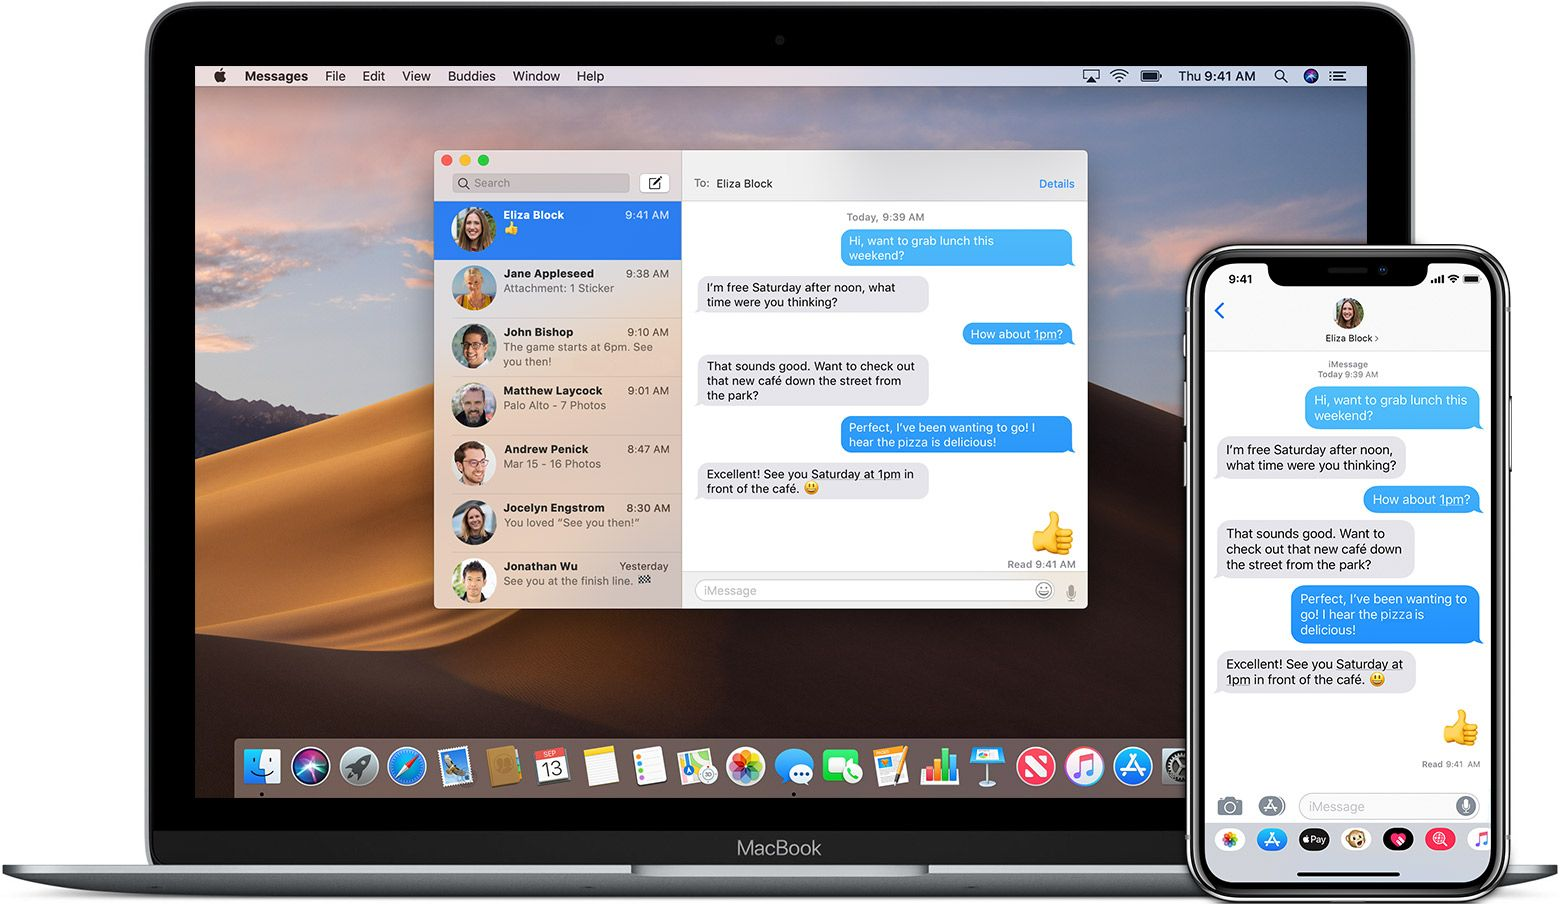 2ceb51d3126079a8edee4377379a6ec4 - How To Get The Messages App On Your Mac